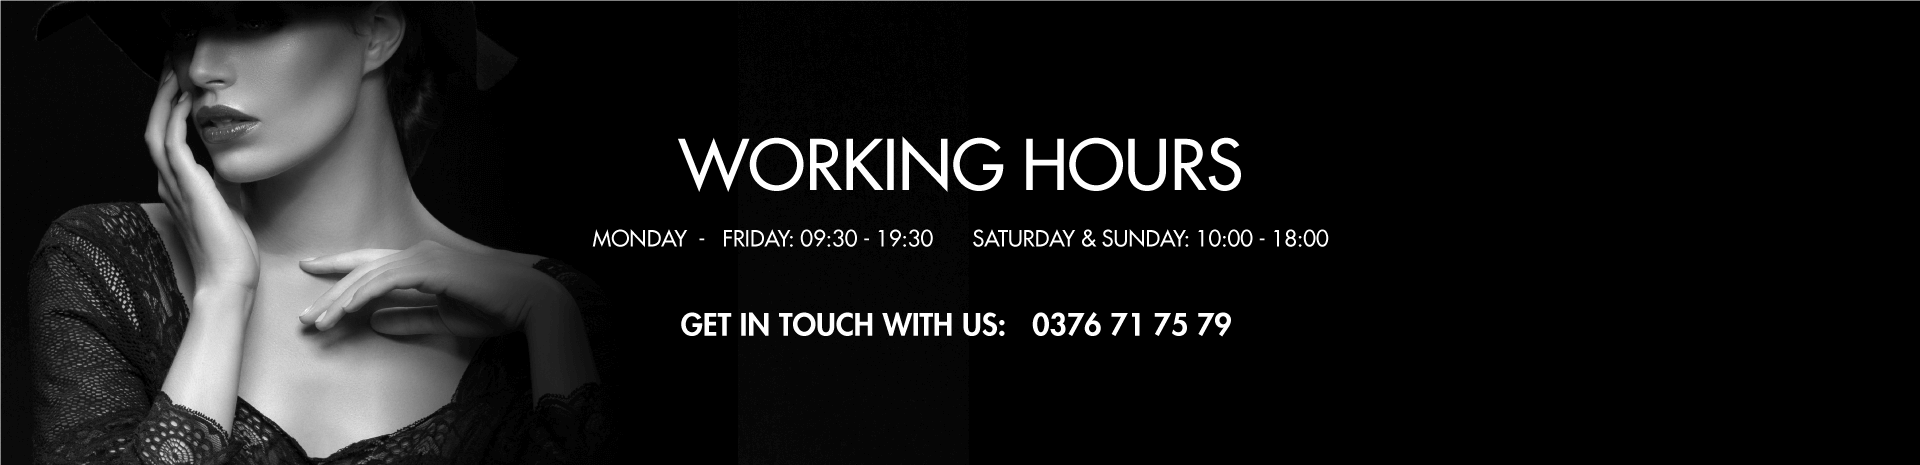 Sian Clinic Working Hours